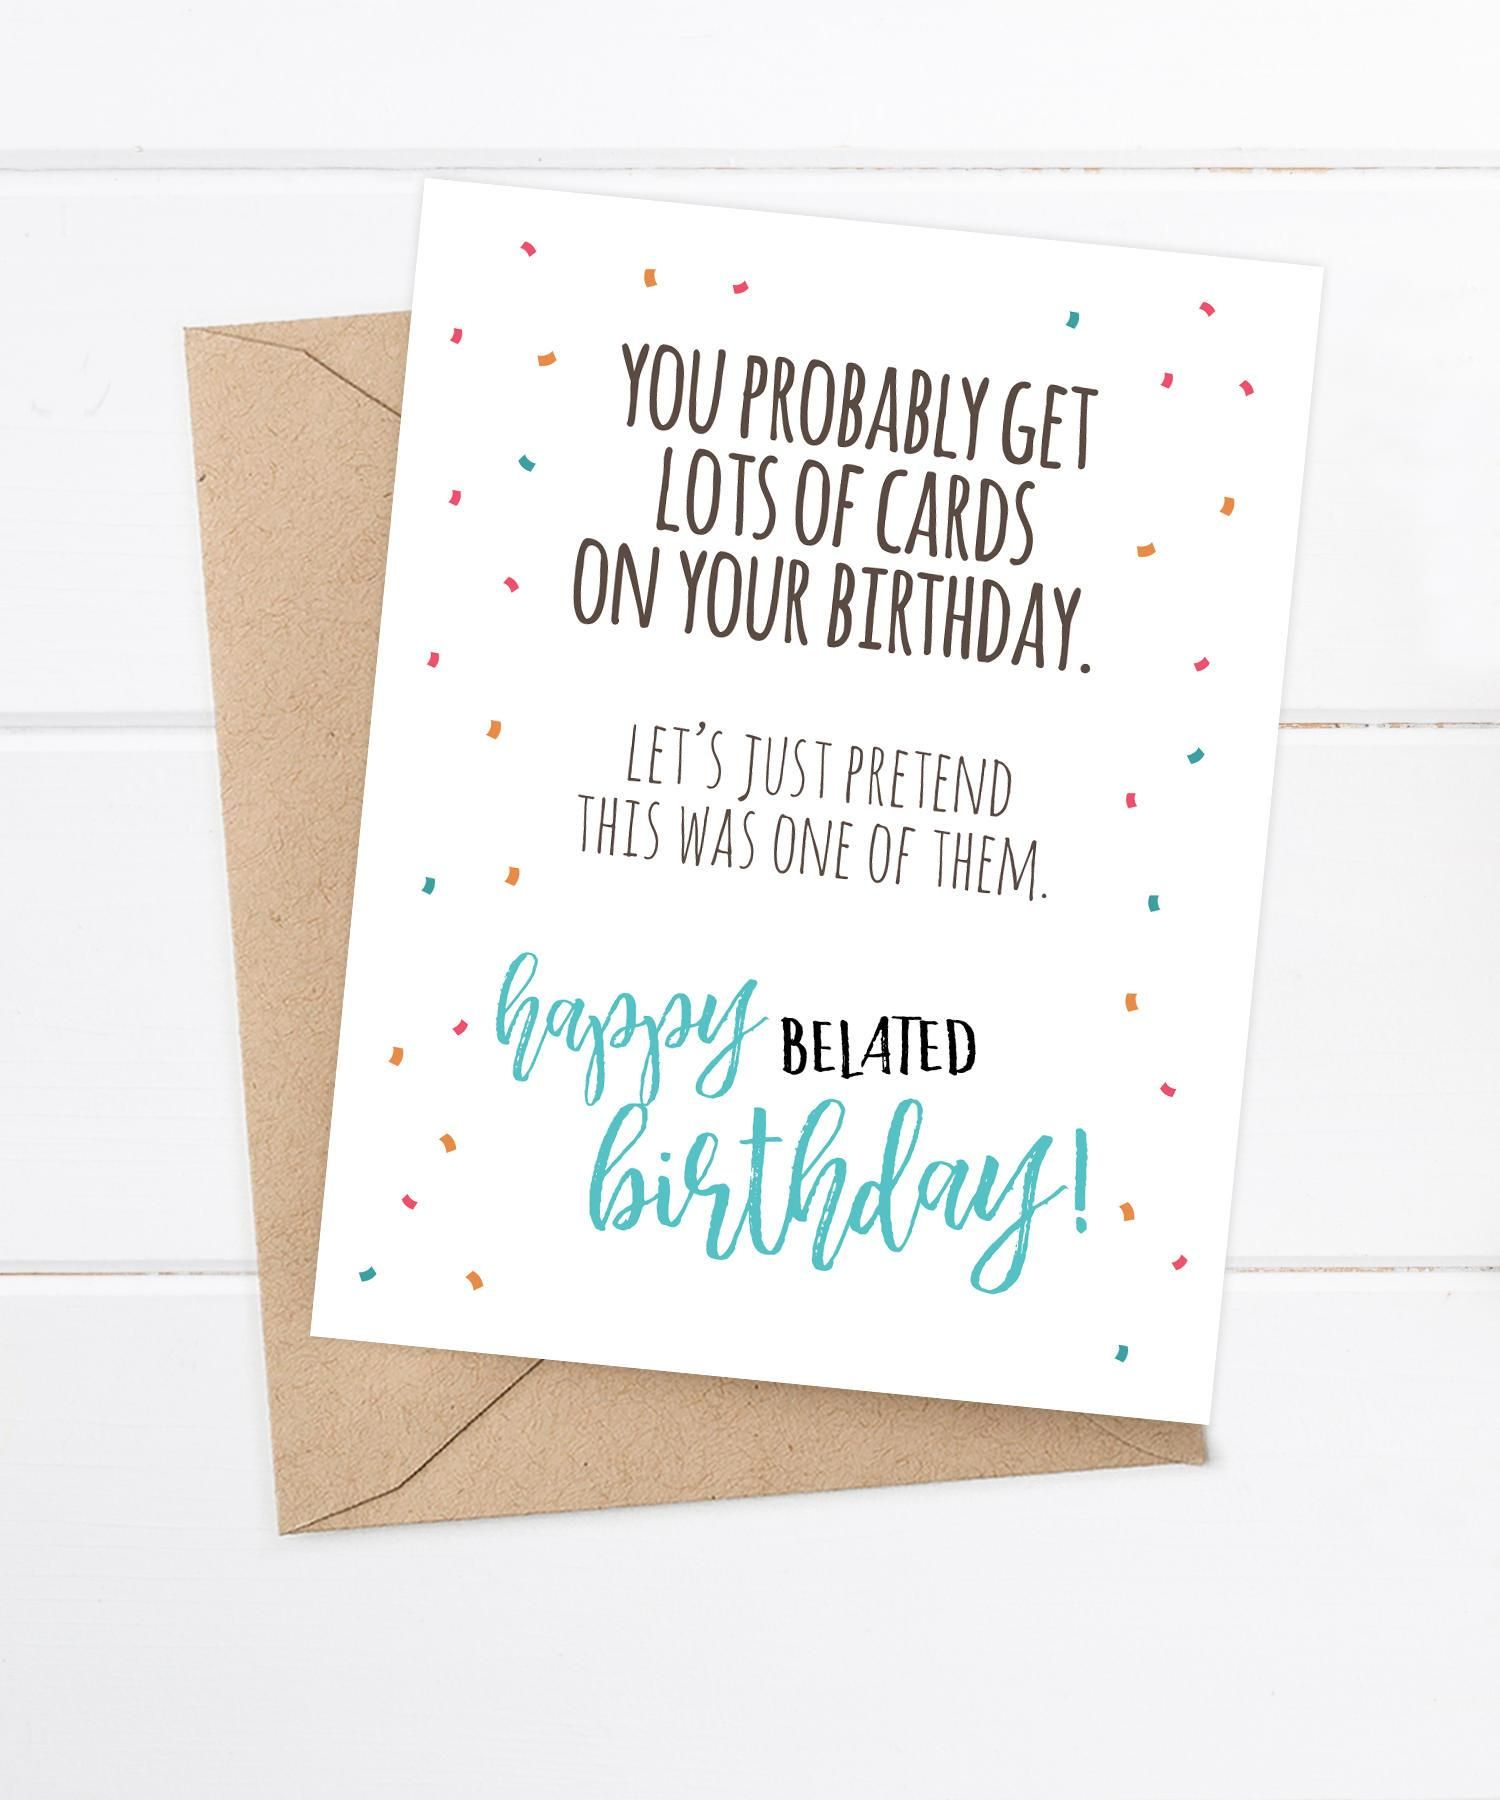 Funny Belated Birthday Card You Probably Get Lots of